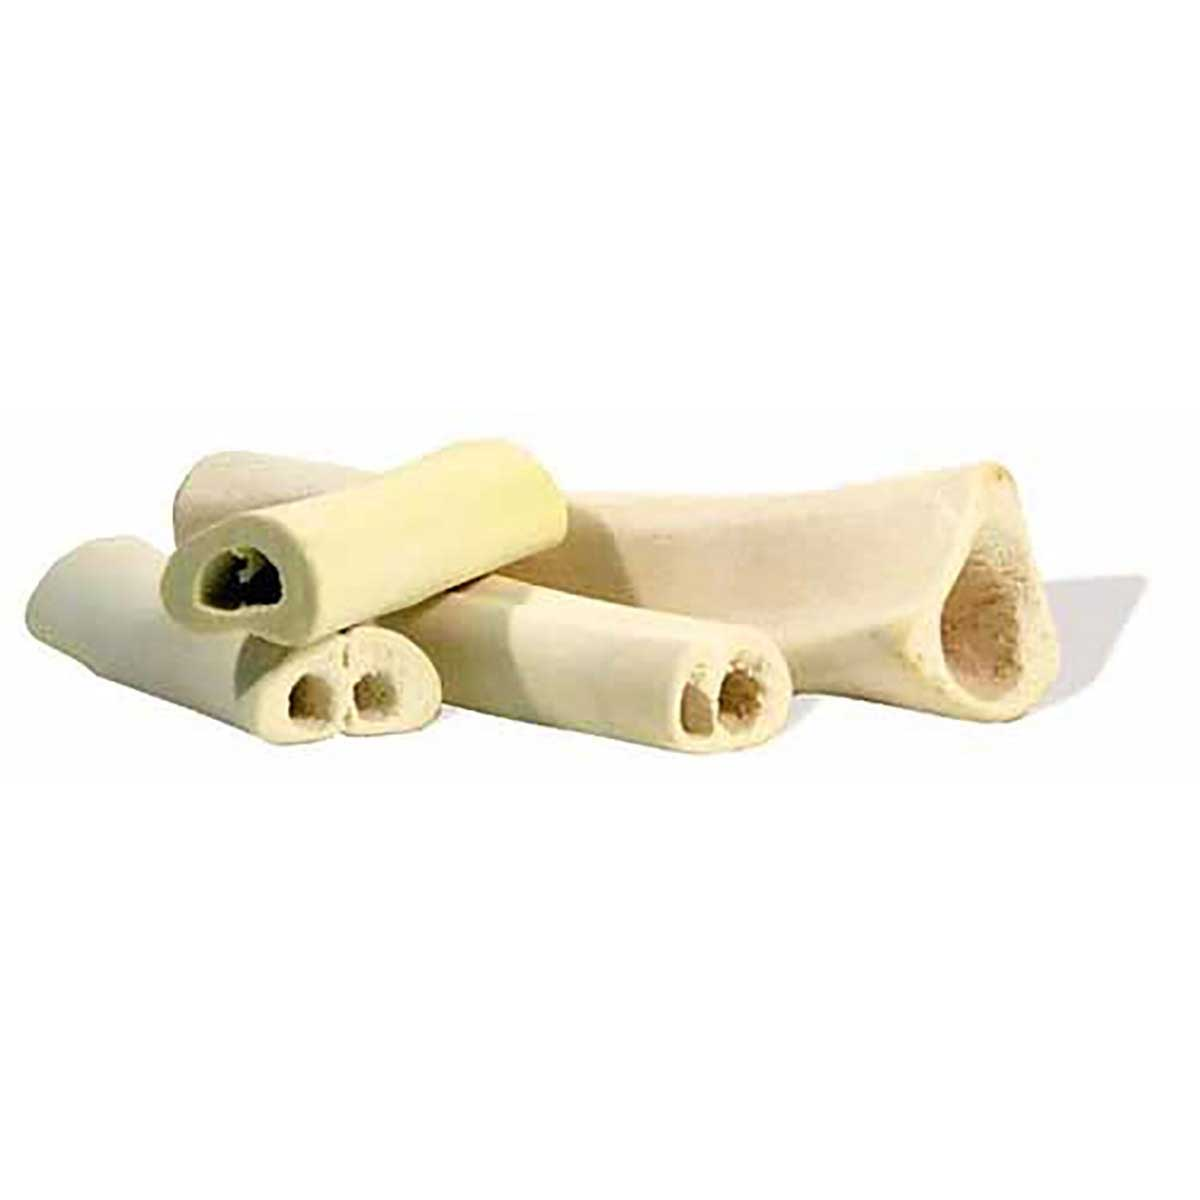 "4"" Sterilized Natural Bones Treat for Dogs"